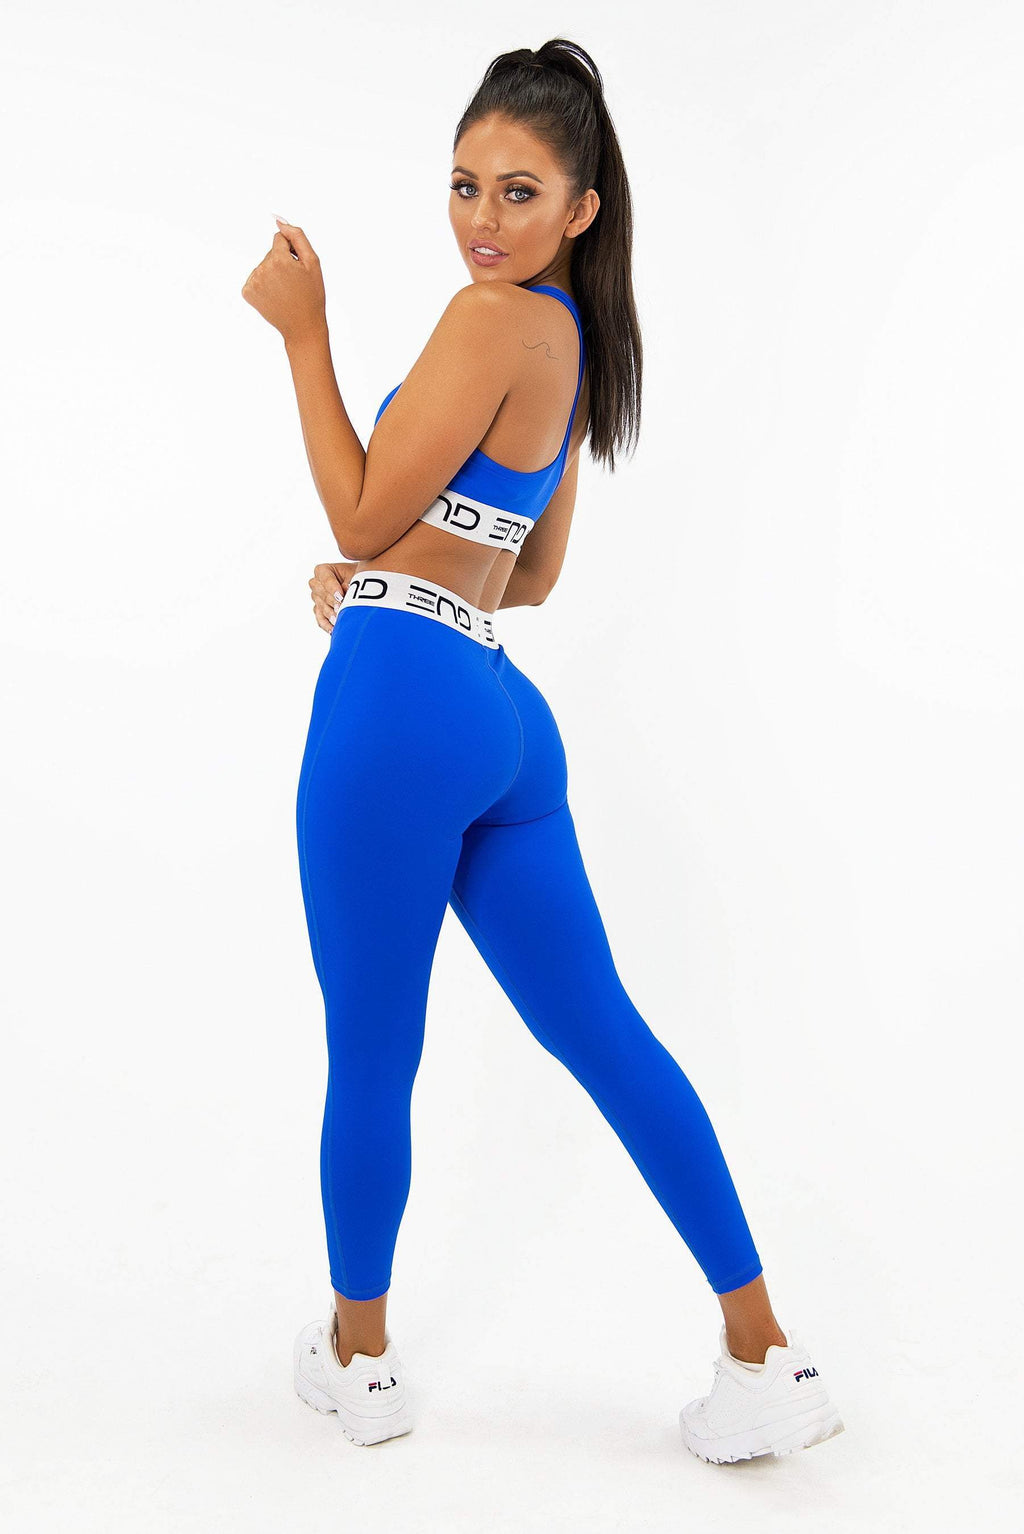 Three End Apparel Crop Tops XS TRACK SPORTS BRA - ELECTRIC BLUE